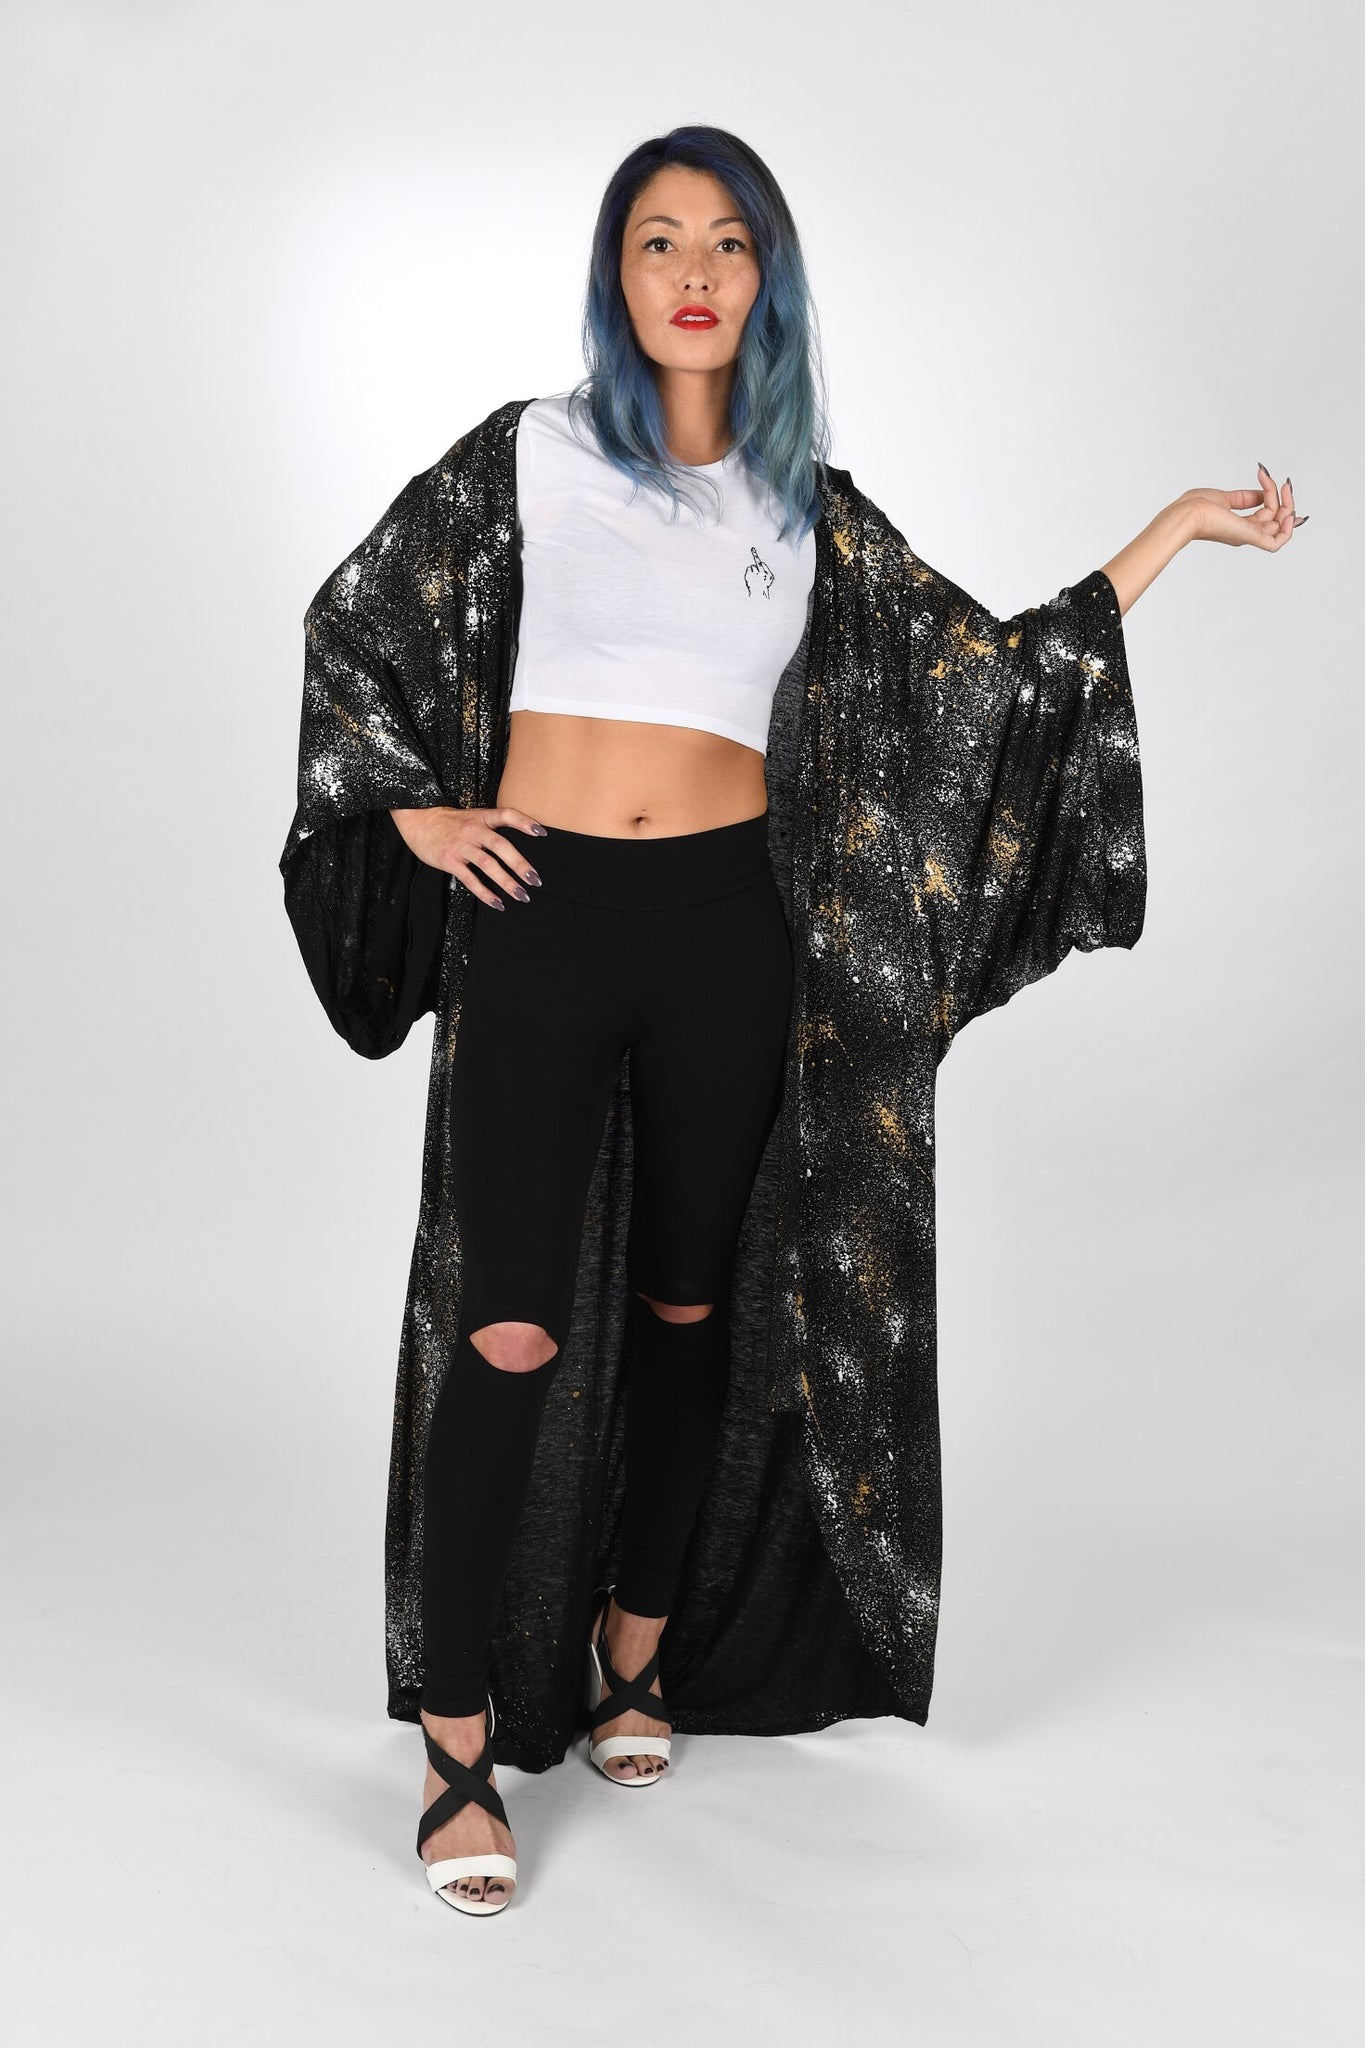 VICTROLA designs | Kimono Duster in Black/Silver/Gold